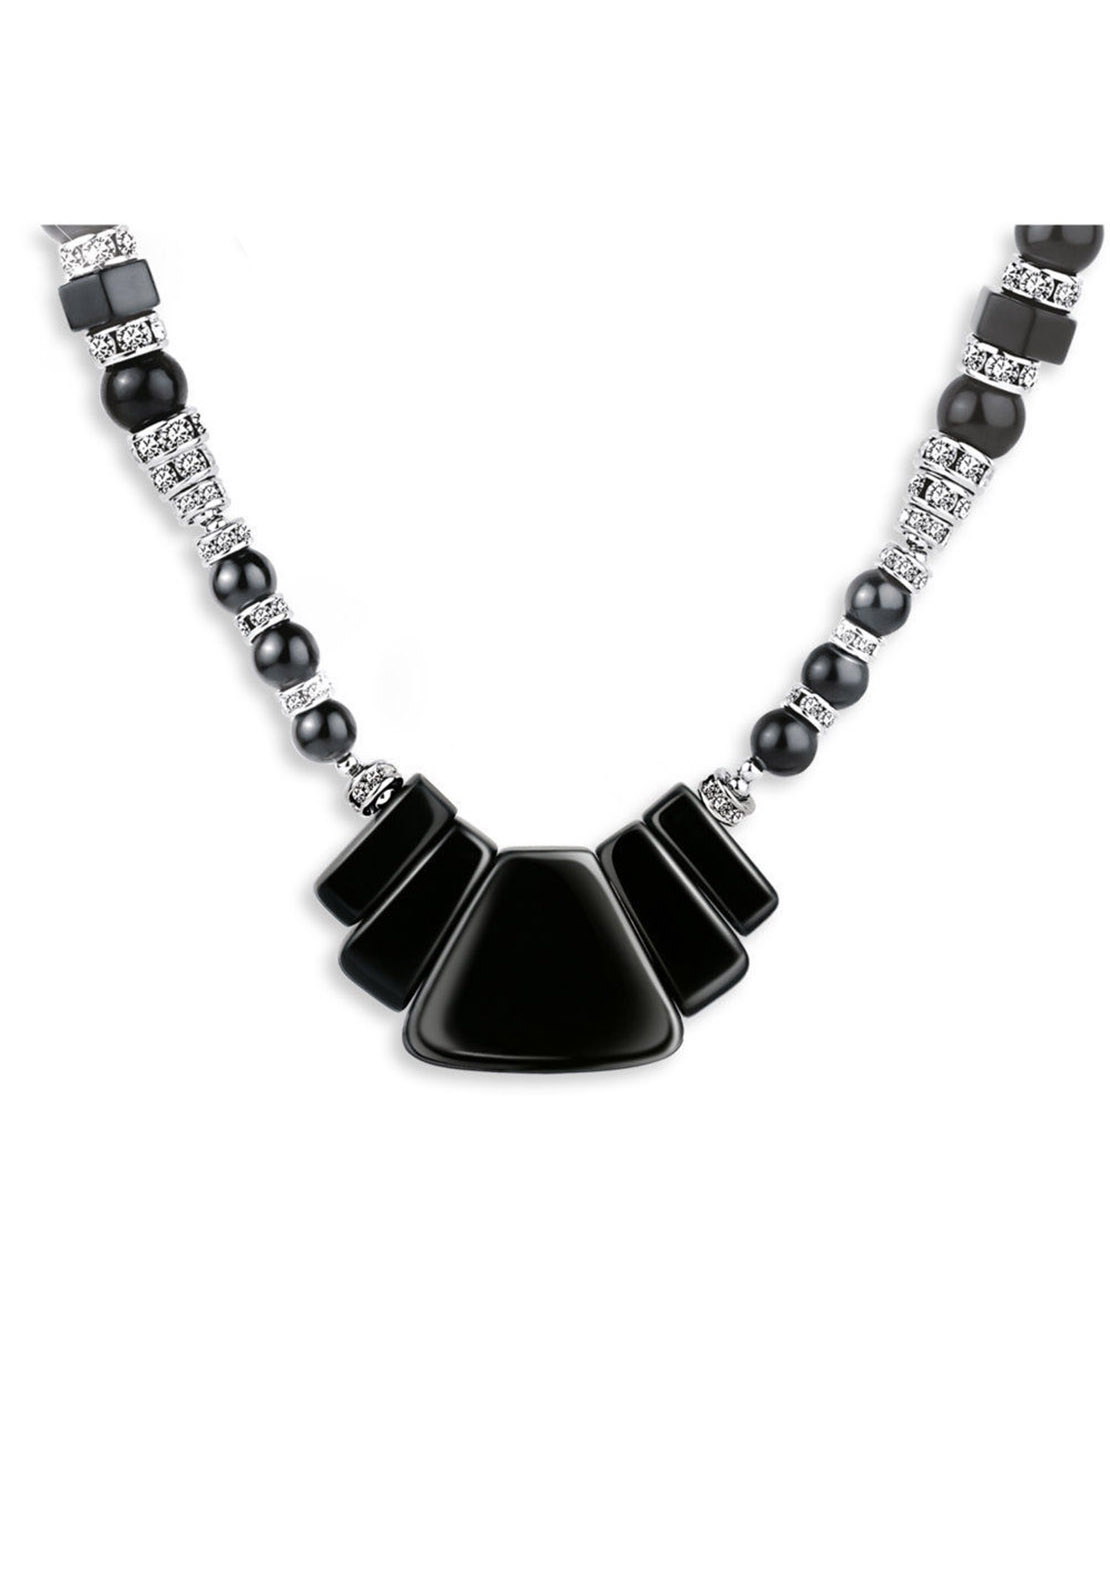 Newbridge Greta Garbo Art Deco Necklace, Black